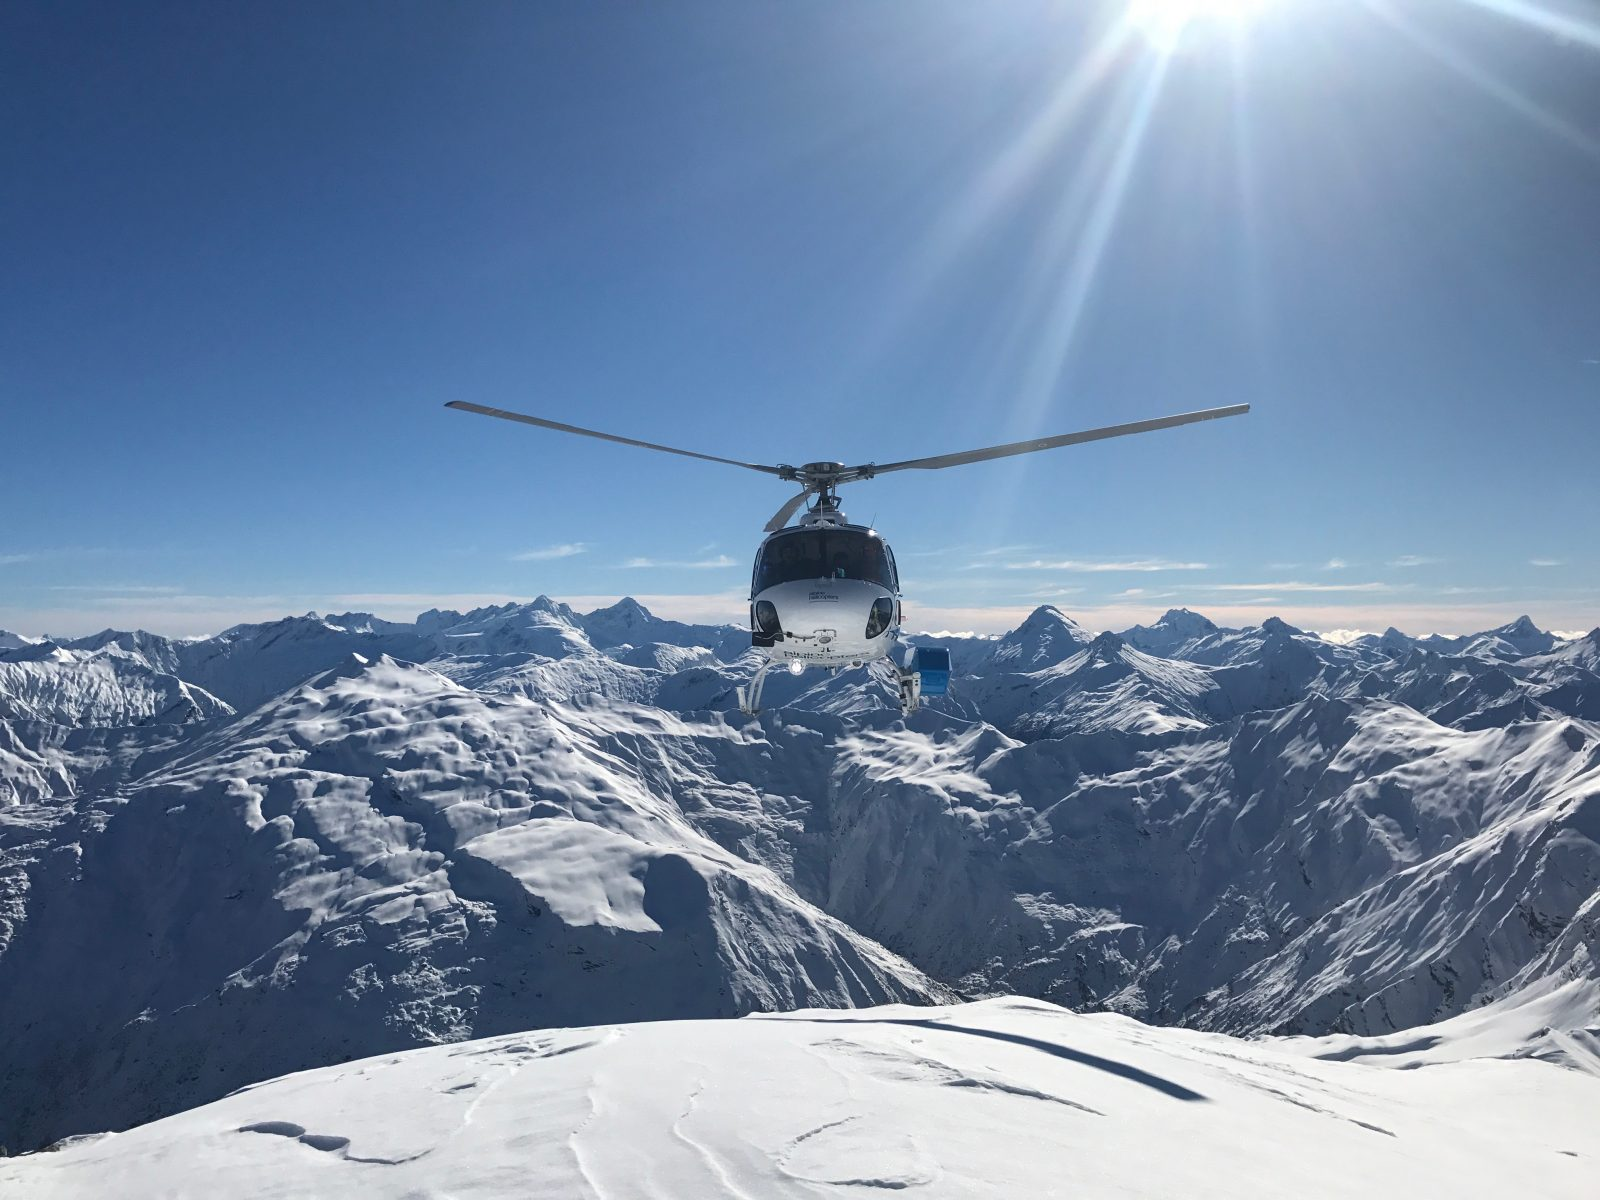 Calling in thehelicopter……take me to another peak please…